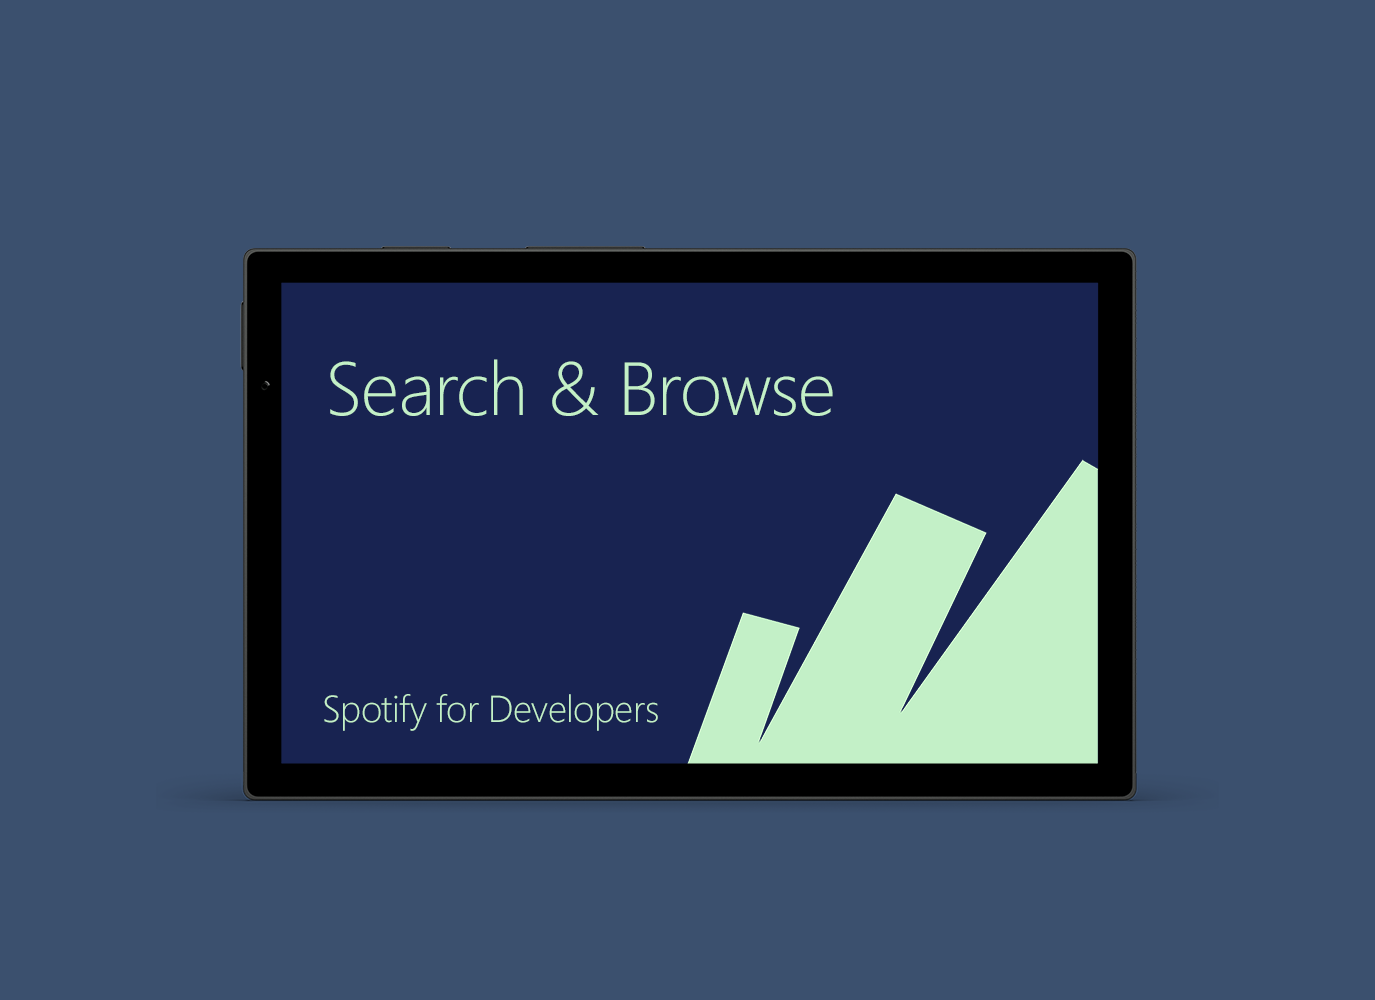 Search & Browse